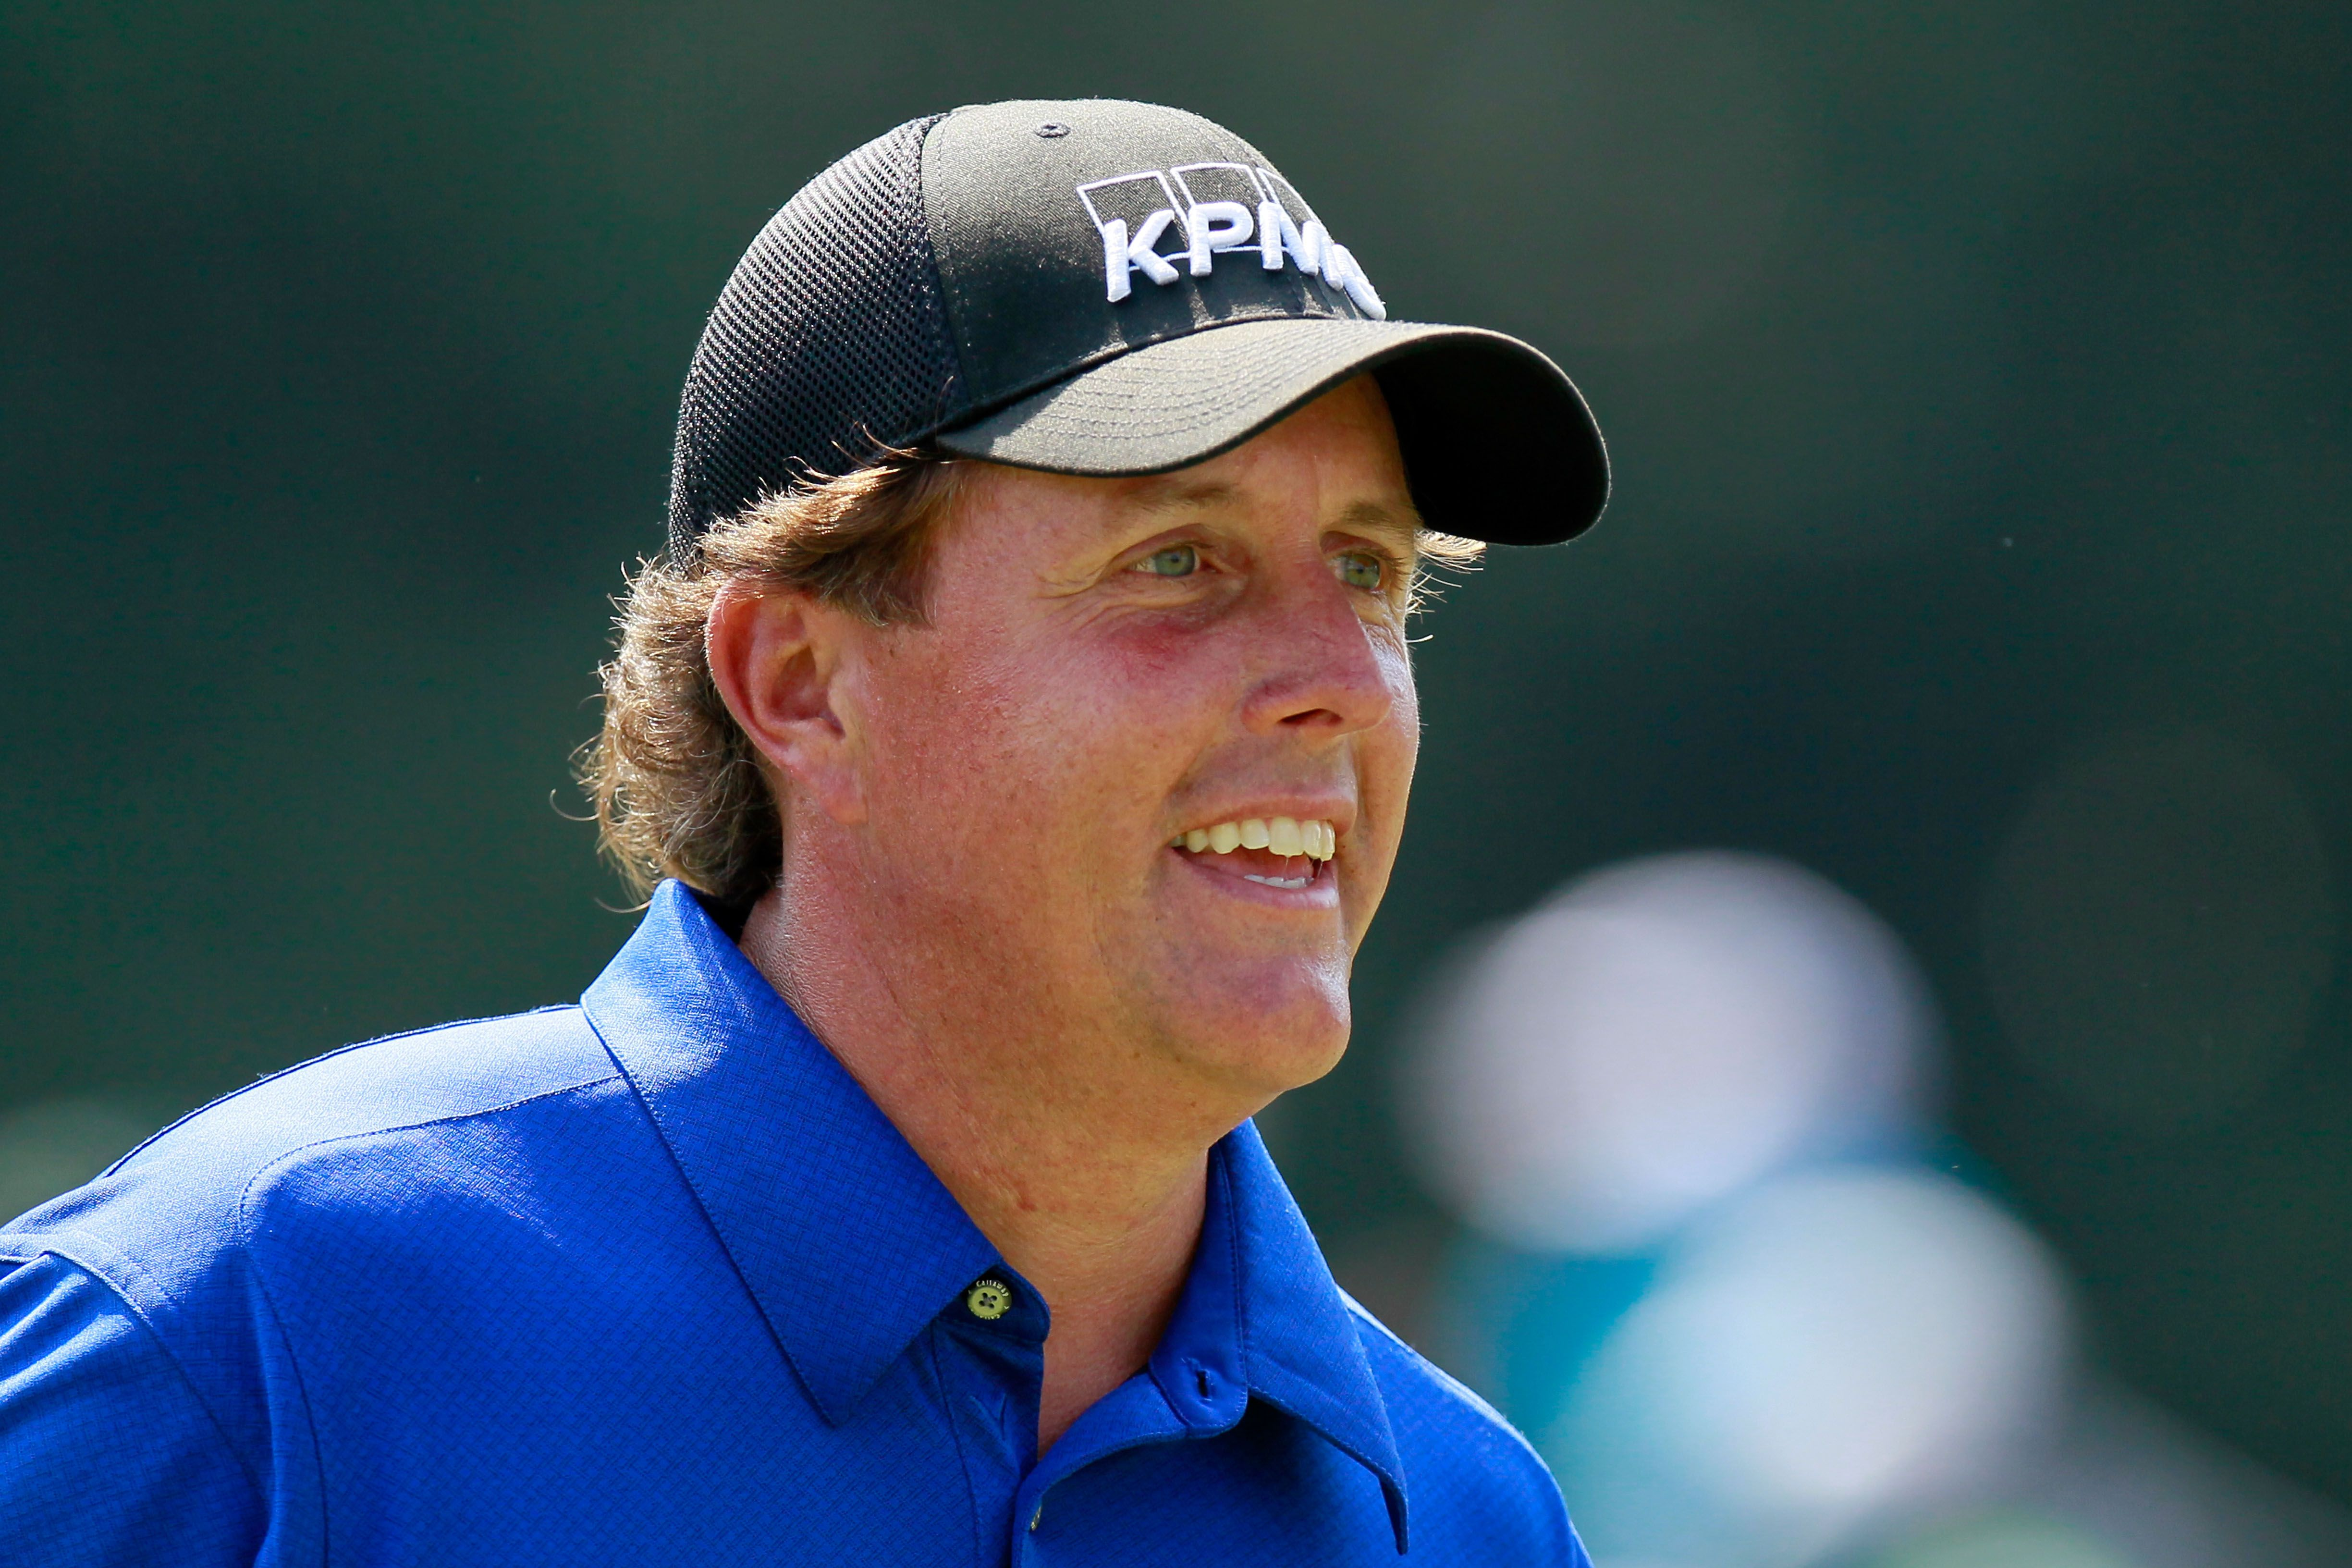 Phil Mickelson Wins The Full List Plus Trivia